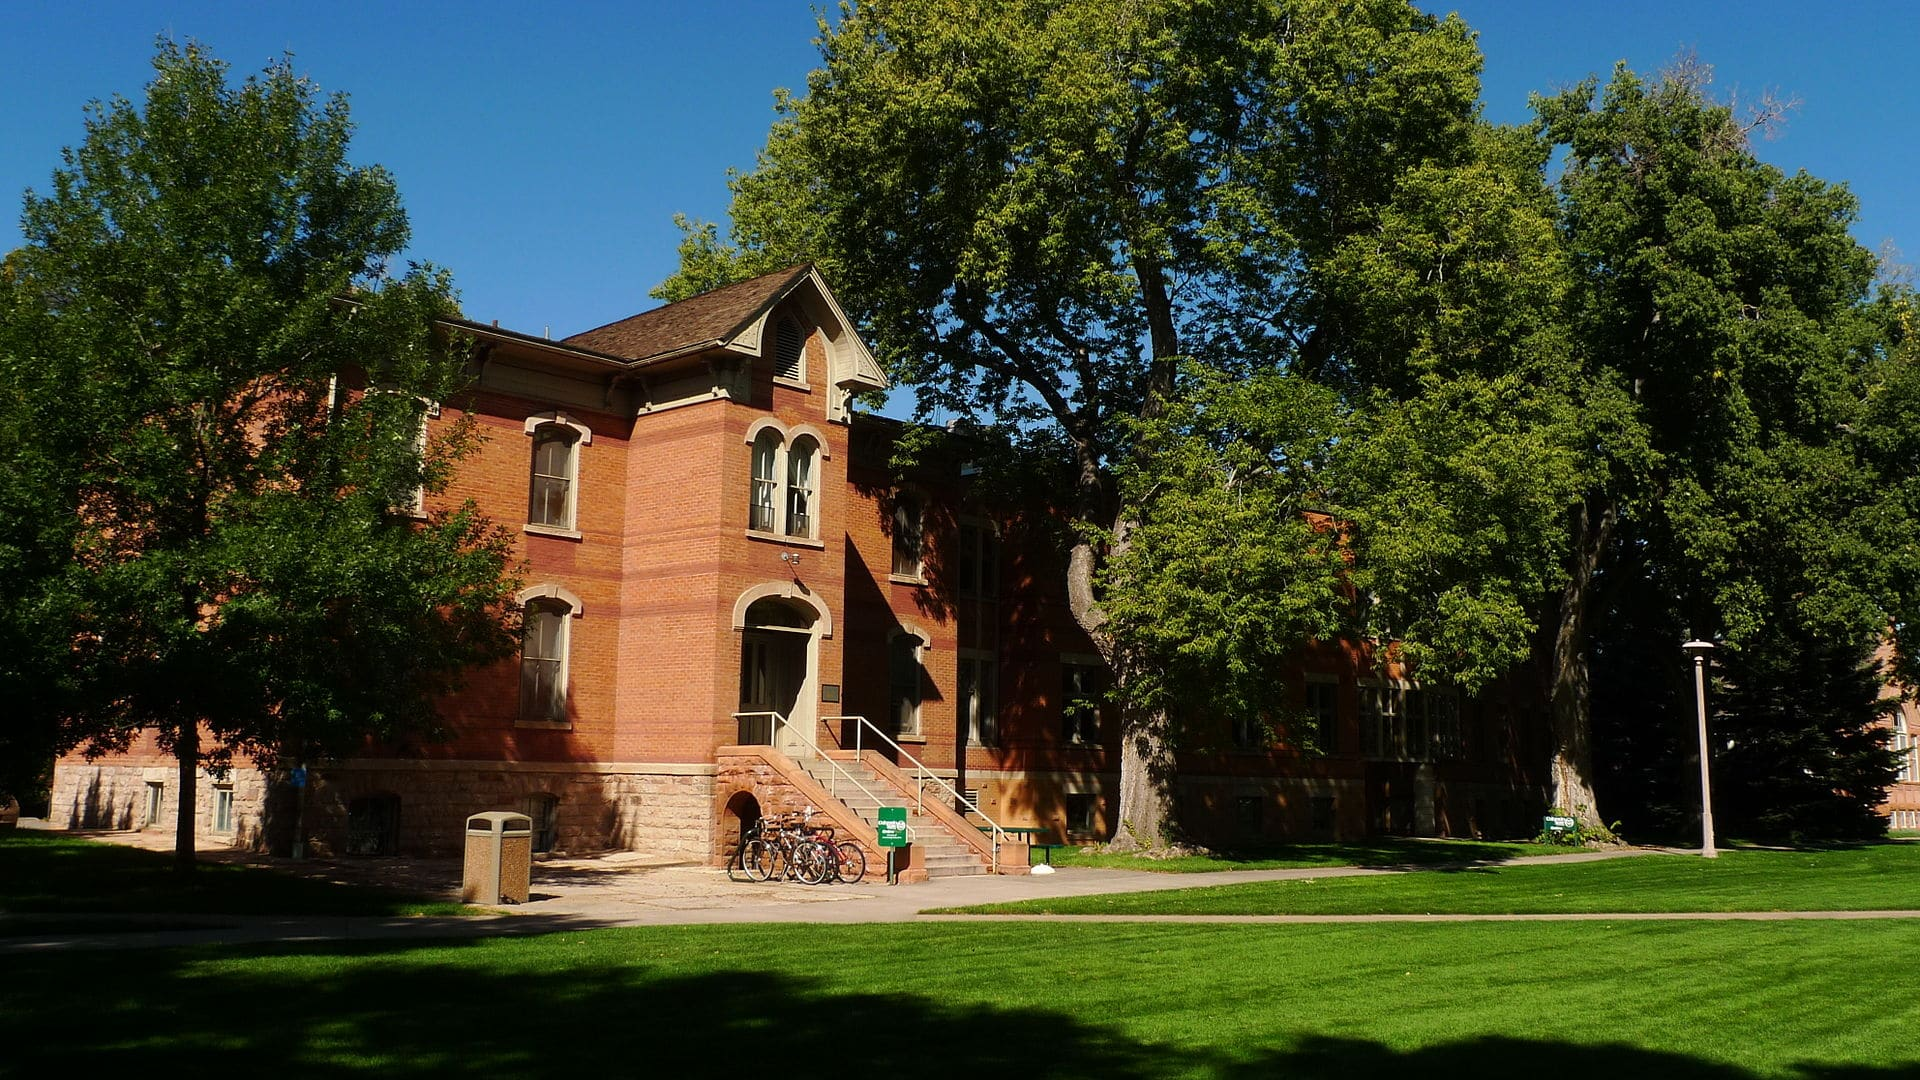 Best_Colleges_and_Universities_Colorado_Colorado_State_University_Ft._Collins